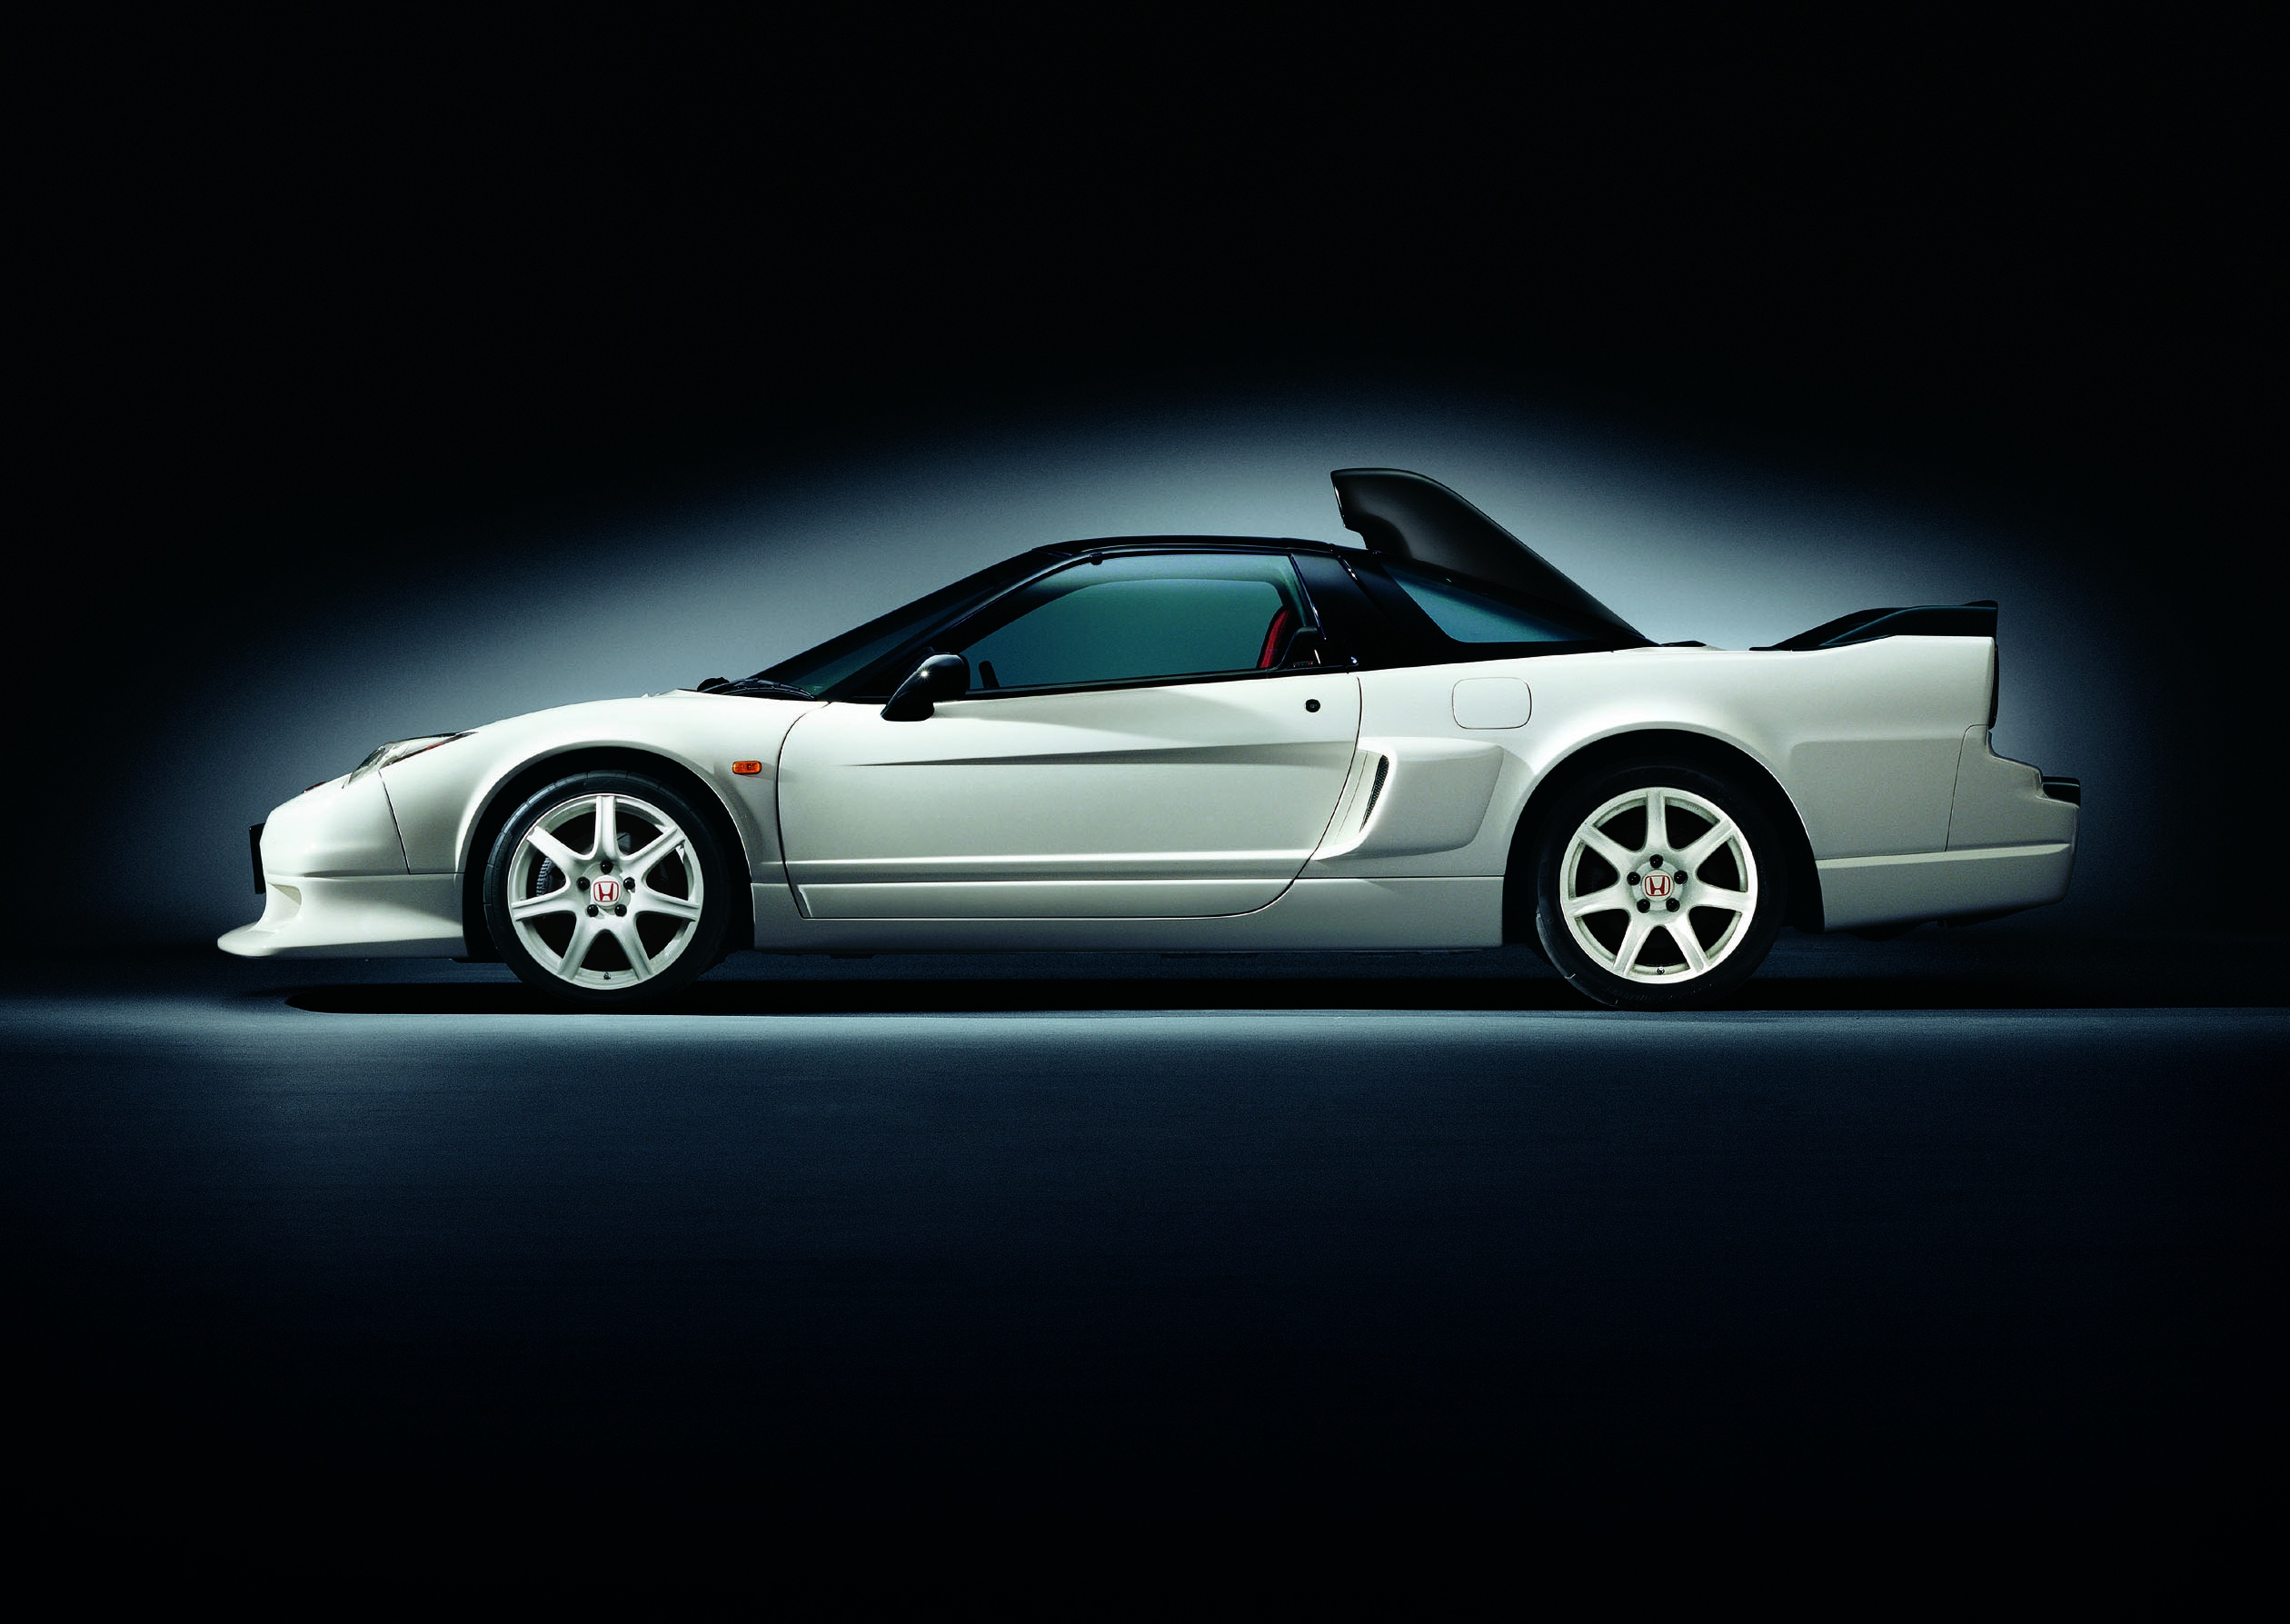 4723nsx r_gt_side_hi res nsx r gt page 2  at edmiracle.co